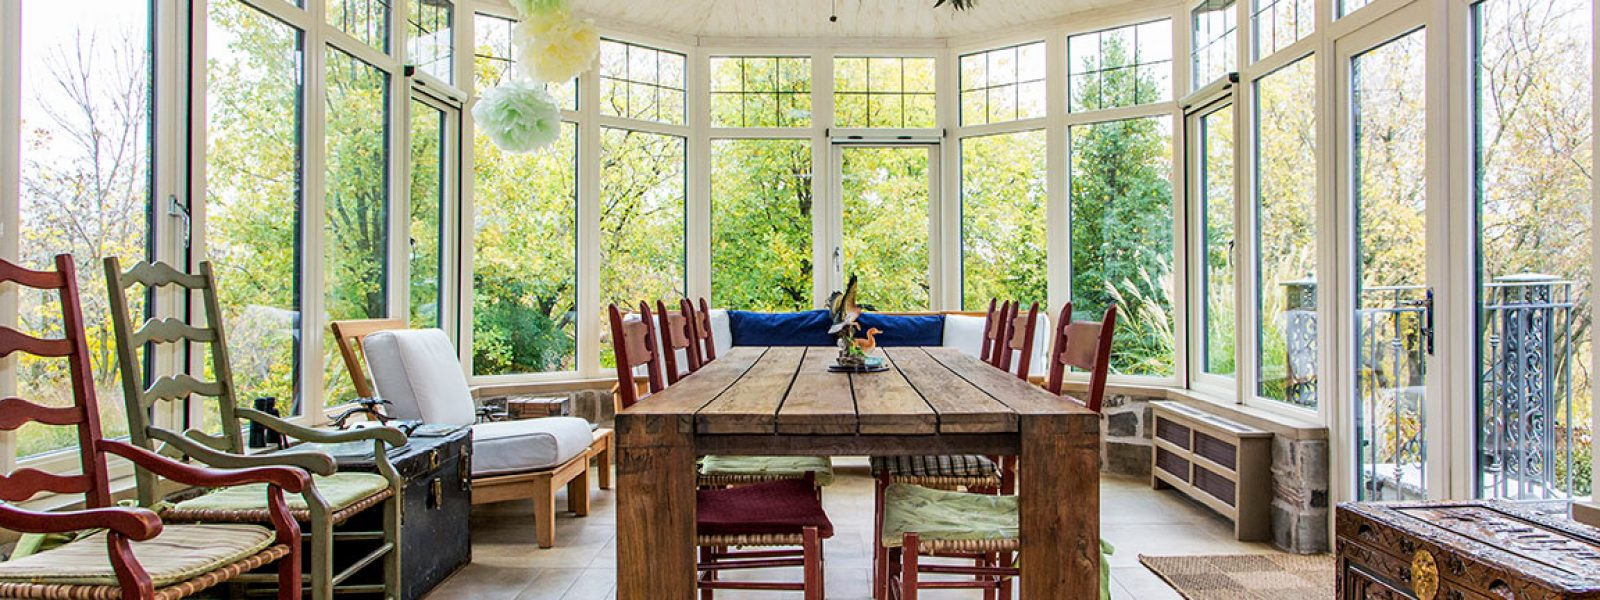 5 Ways To Spruce Up Your Home With Sunroom Furniture Livingspace